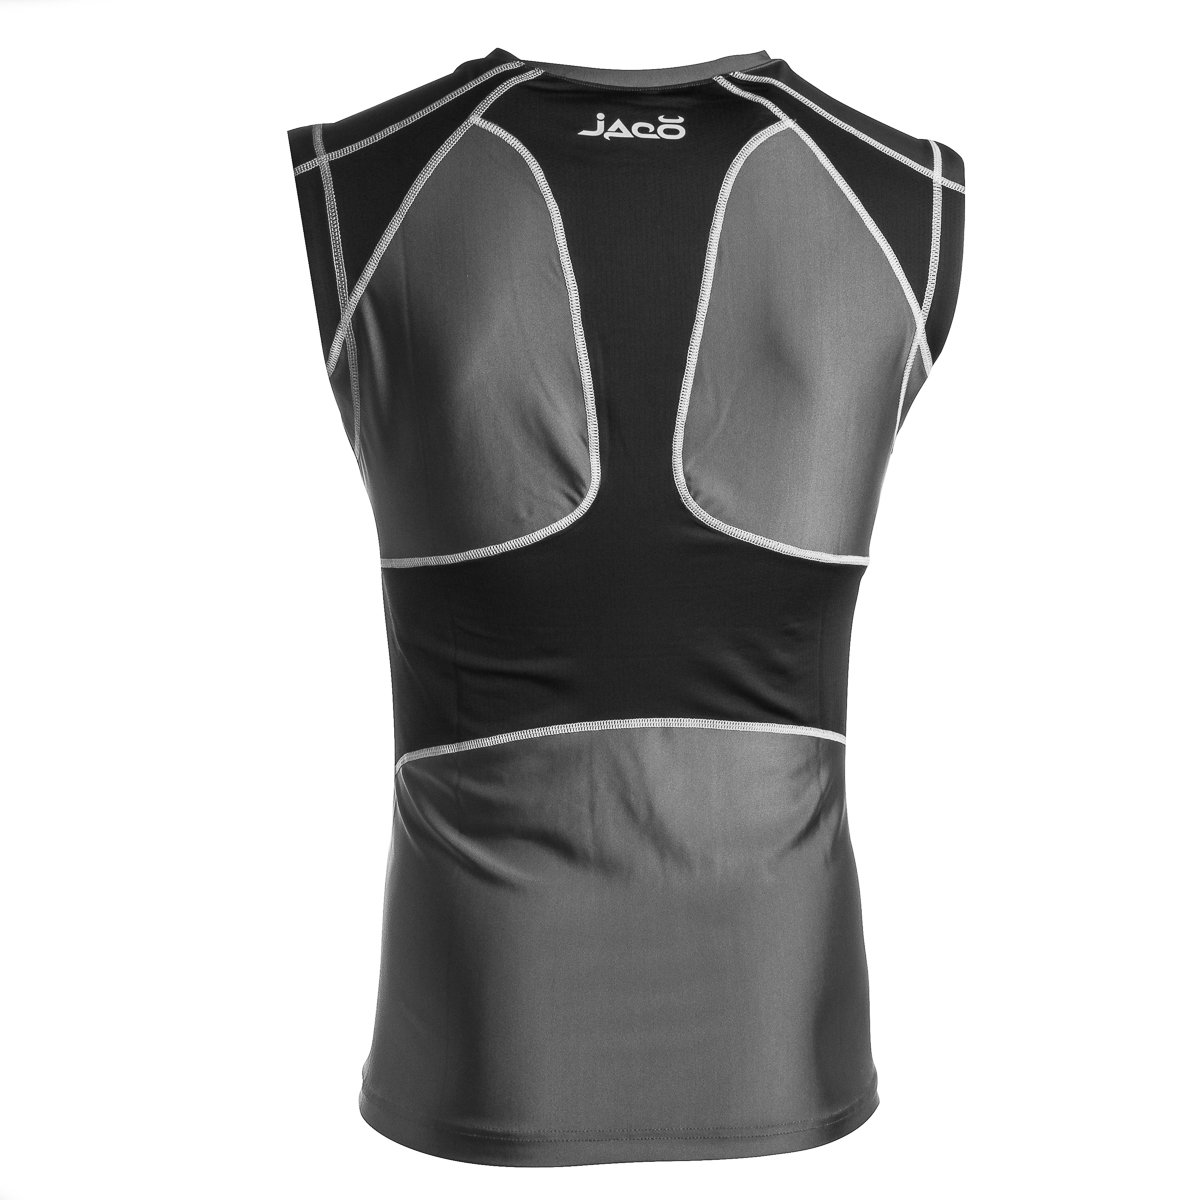 Jaco Clothing Proguard Men/'s Compression Shirt Sleeveless Top Athletic Performance Workout Shirt